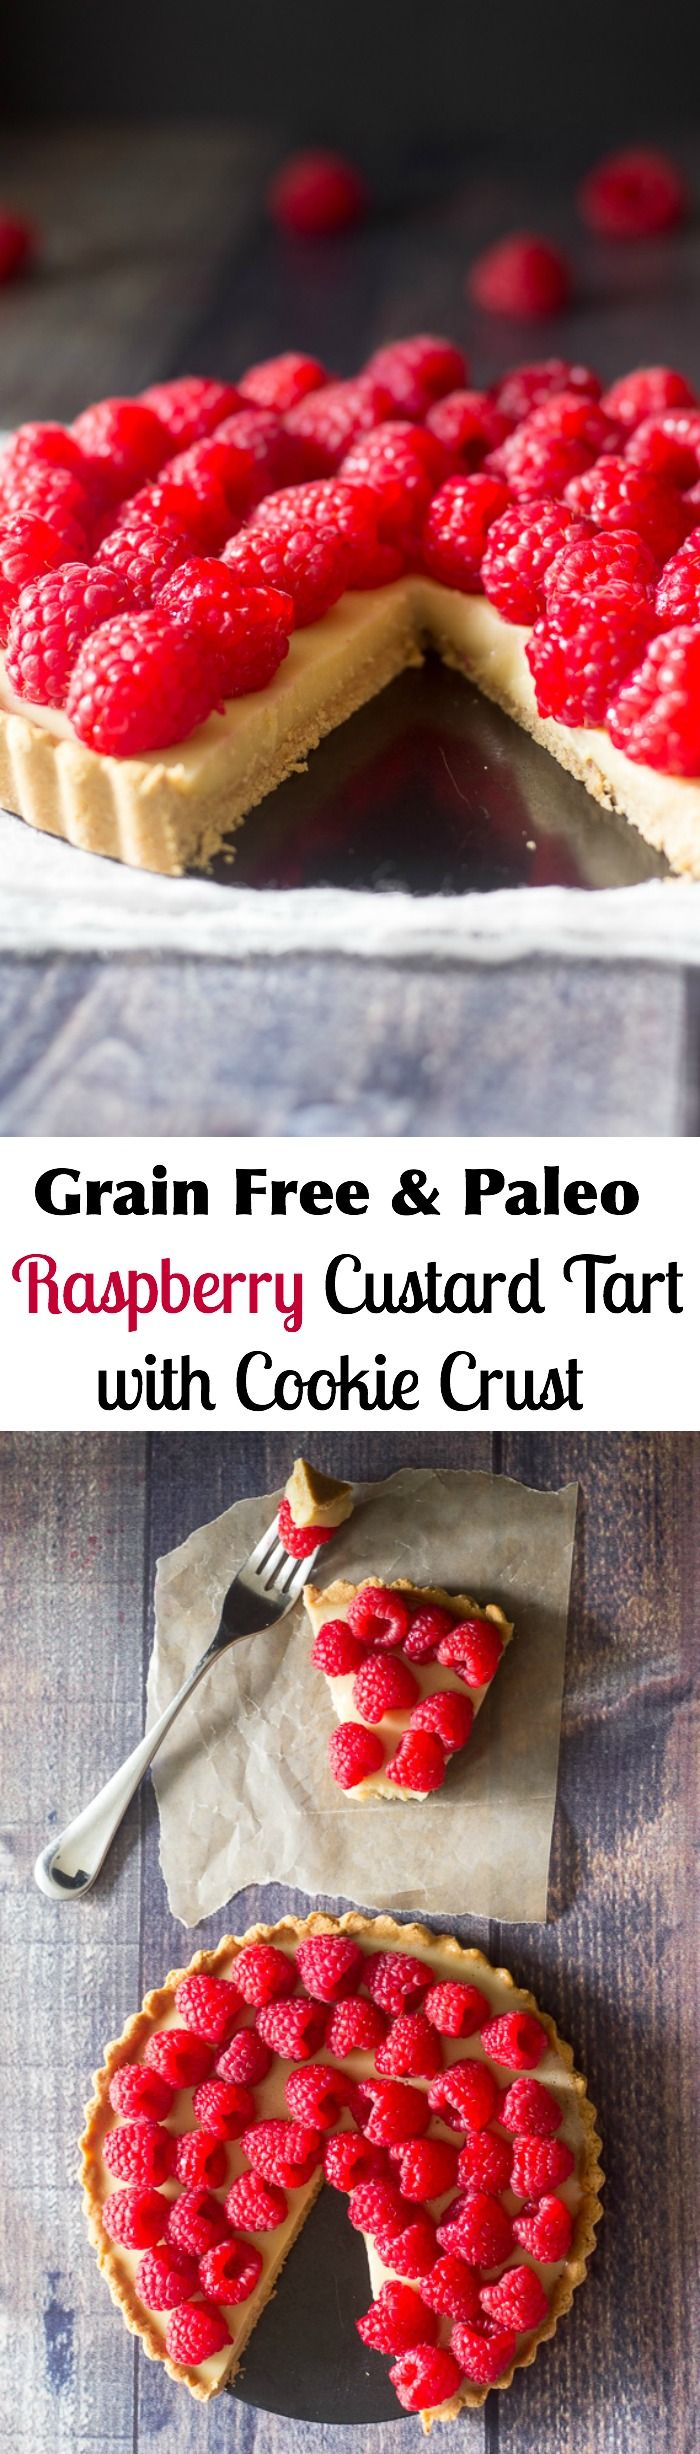 Raspberry Custard Tart with cookie crust - grain free and paleo